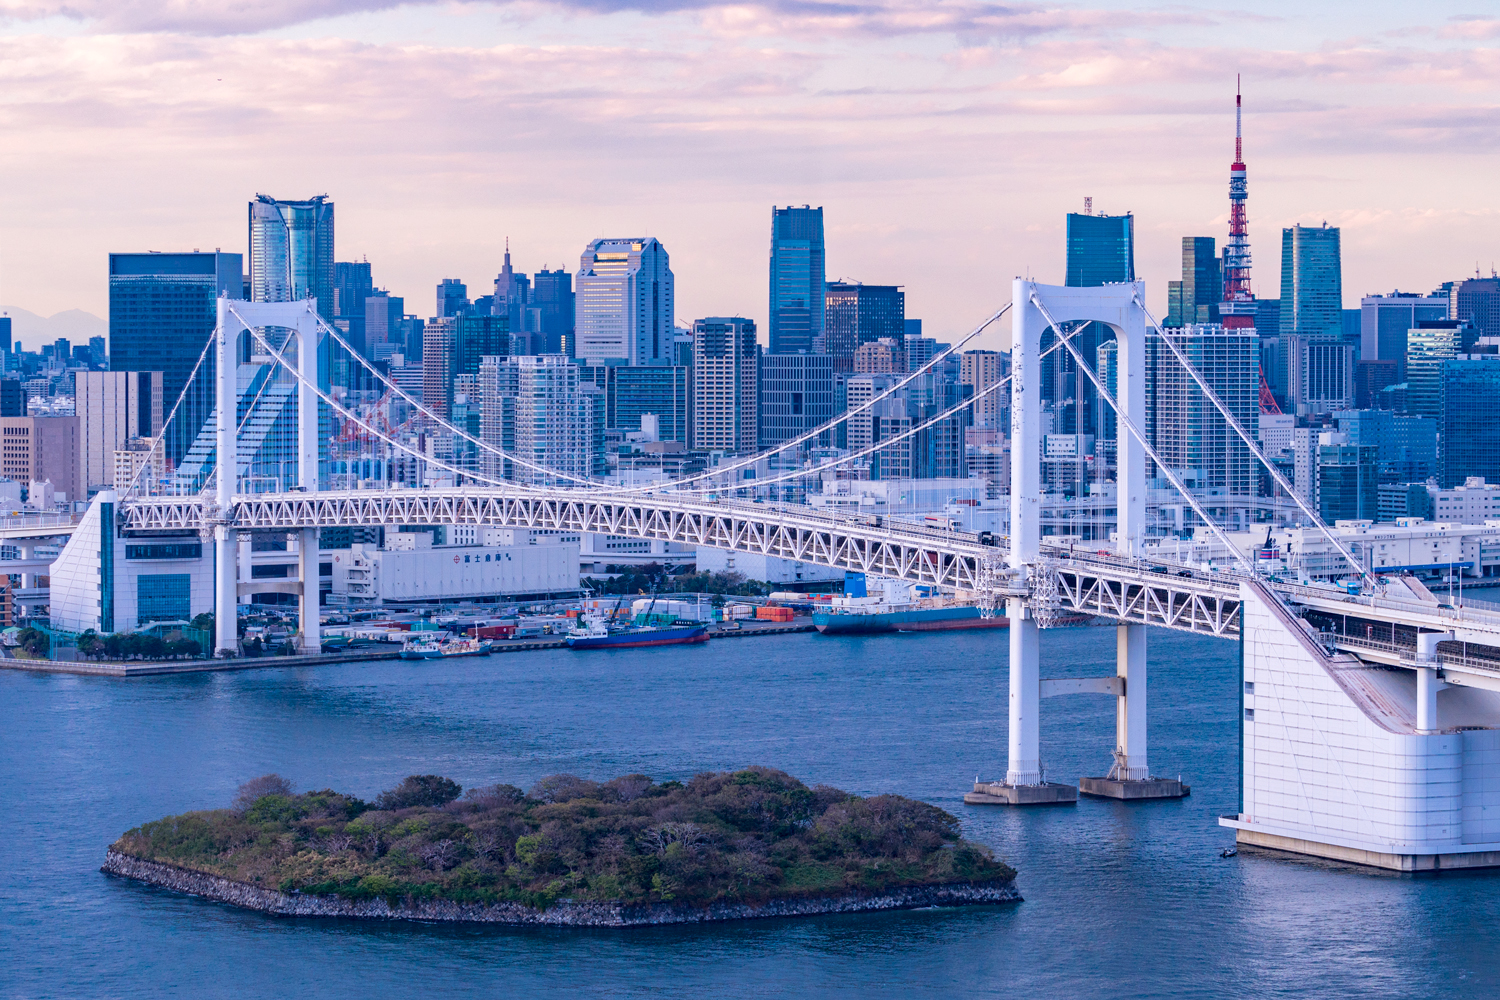 Tokyo Bay Private Cruise with Cyrotherapy Cryo Body Care Private Package Tour